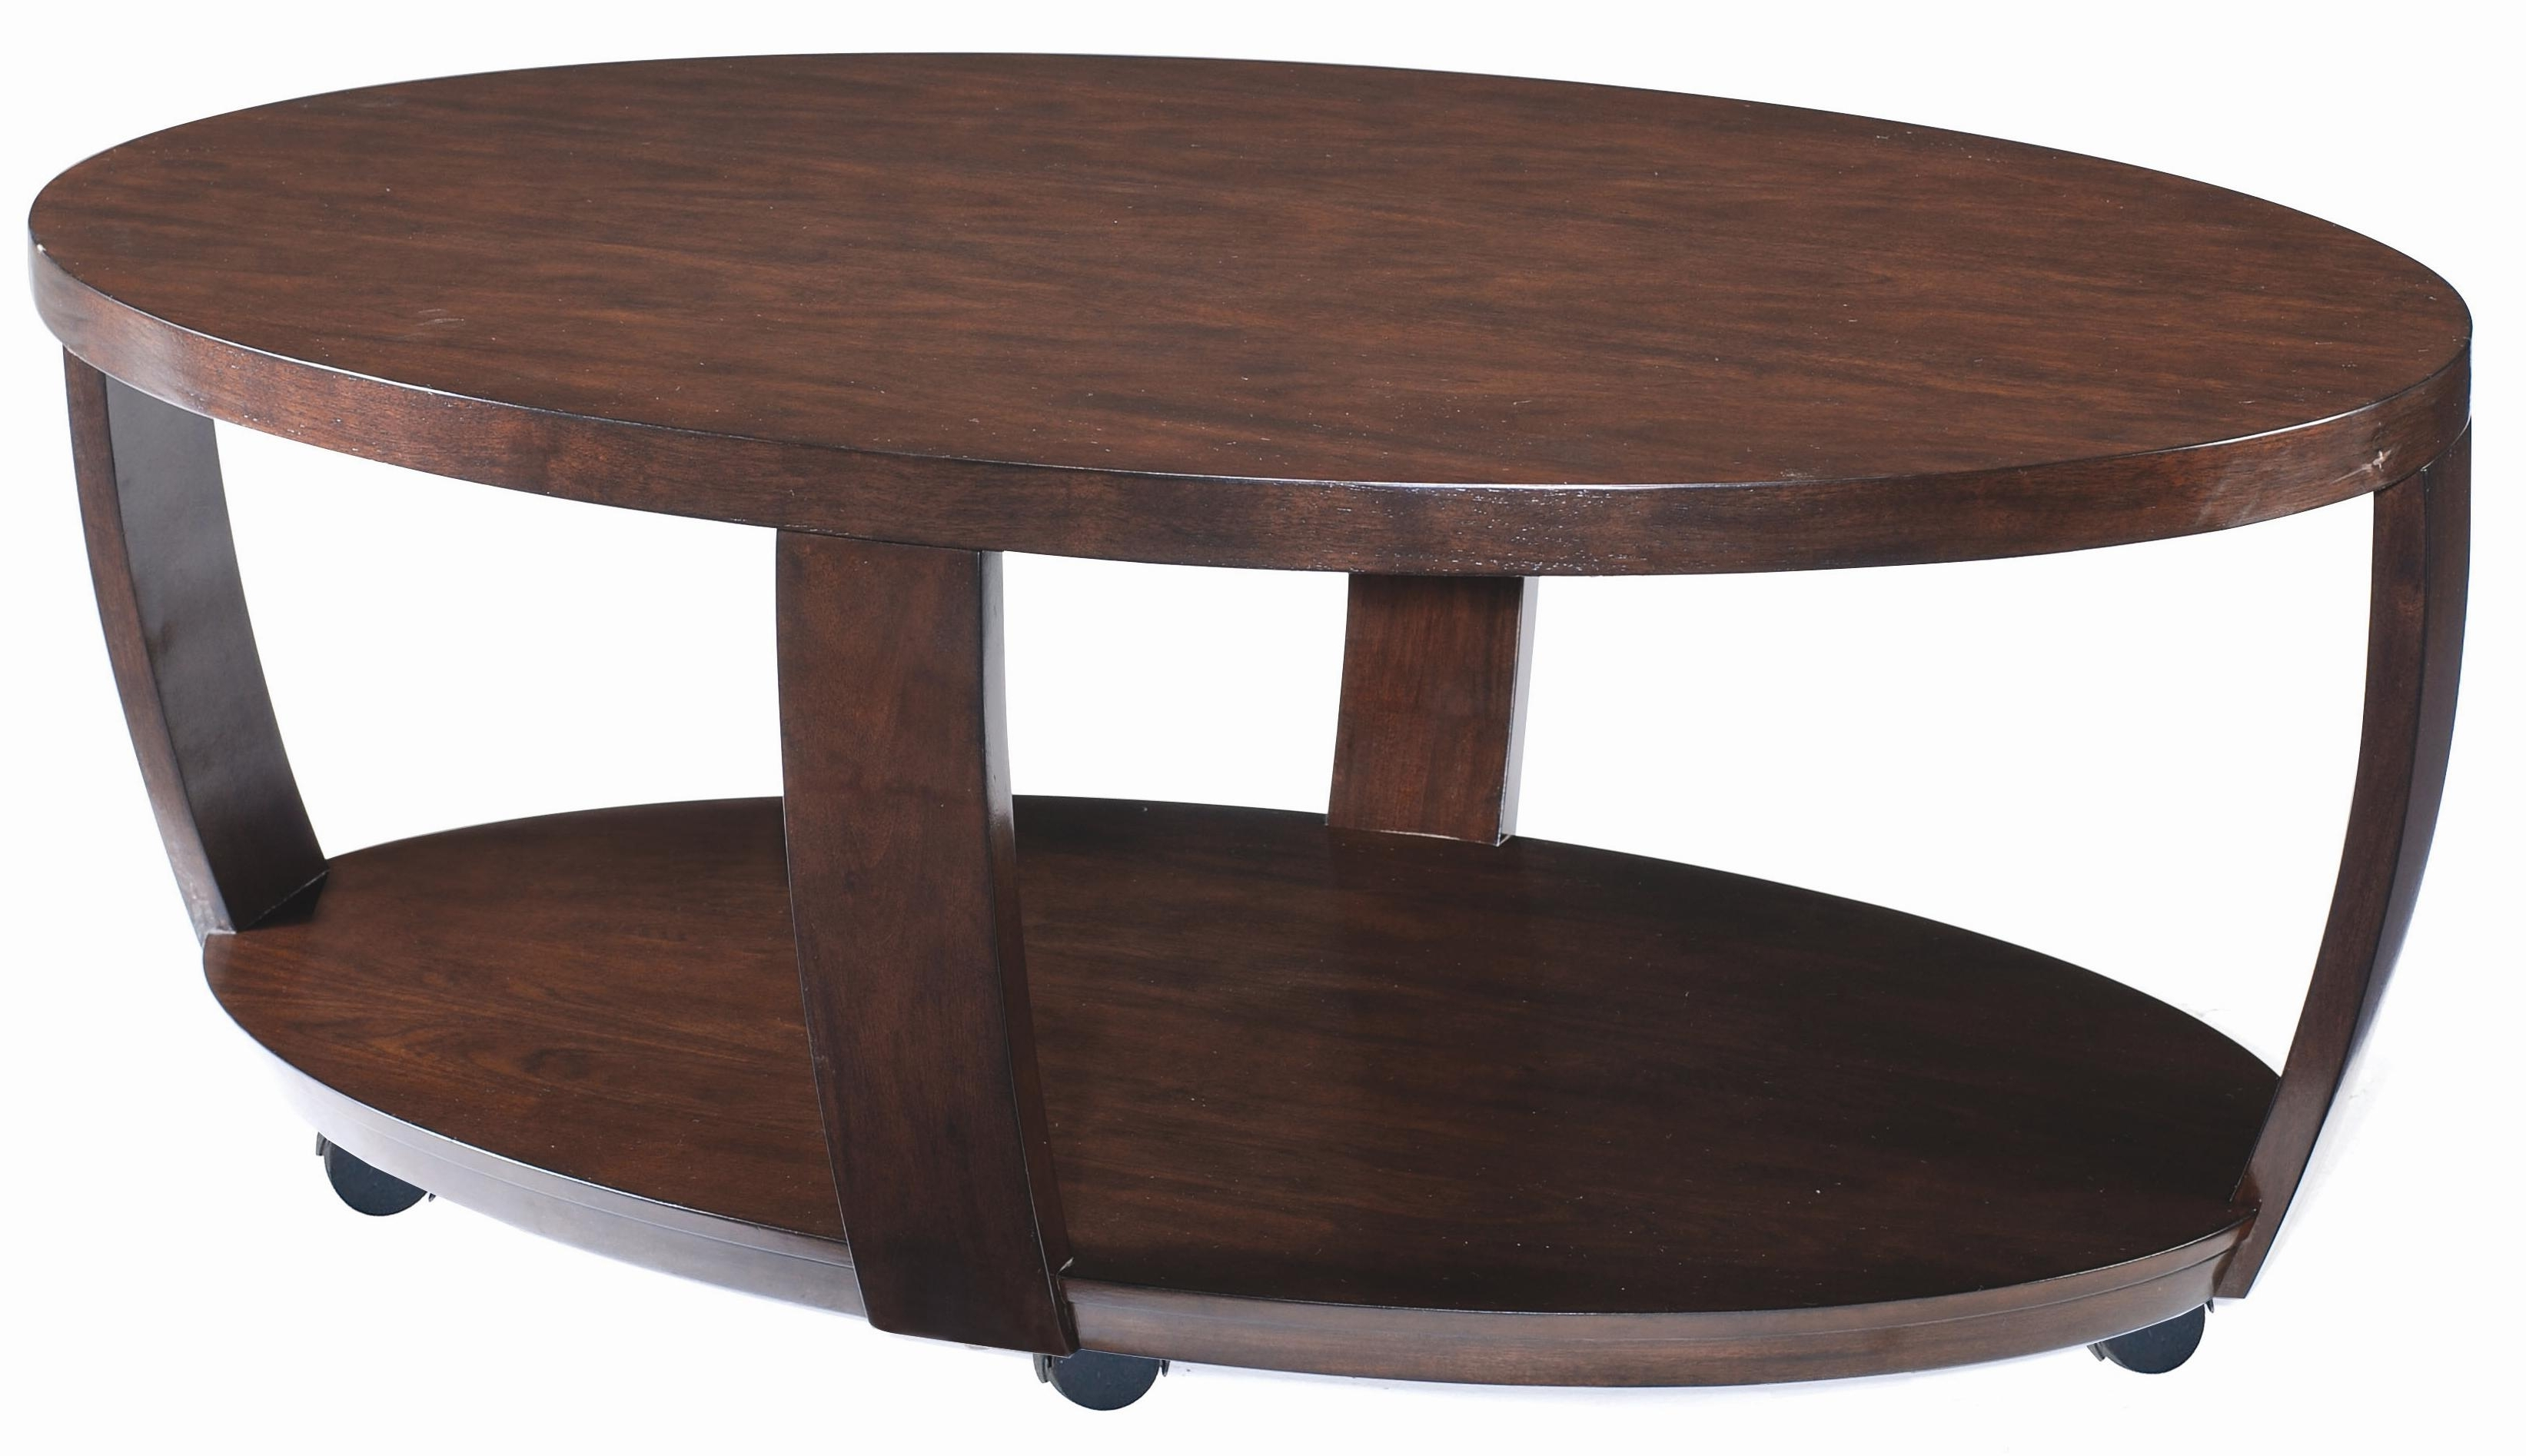 Magnussen Home Sotto Oval Cocktail Table With Casters – Ahfa With Latest Ontario Cocktail Tables With Casters (View 8 of 20)